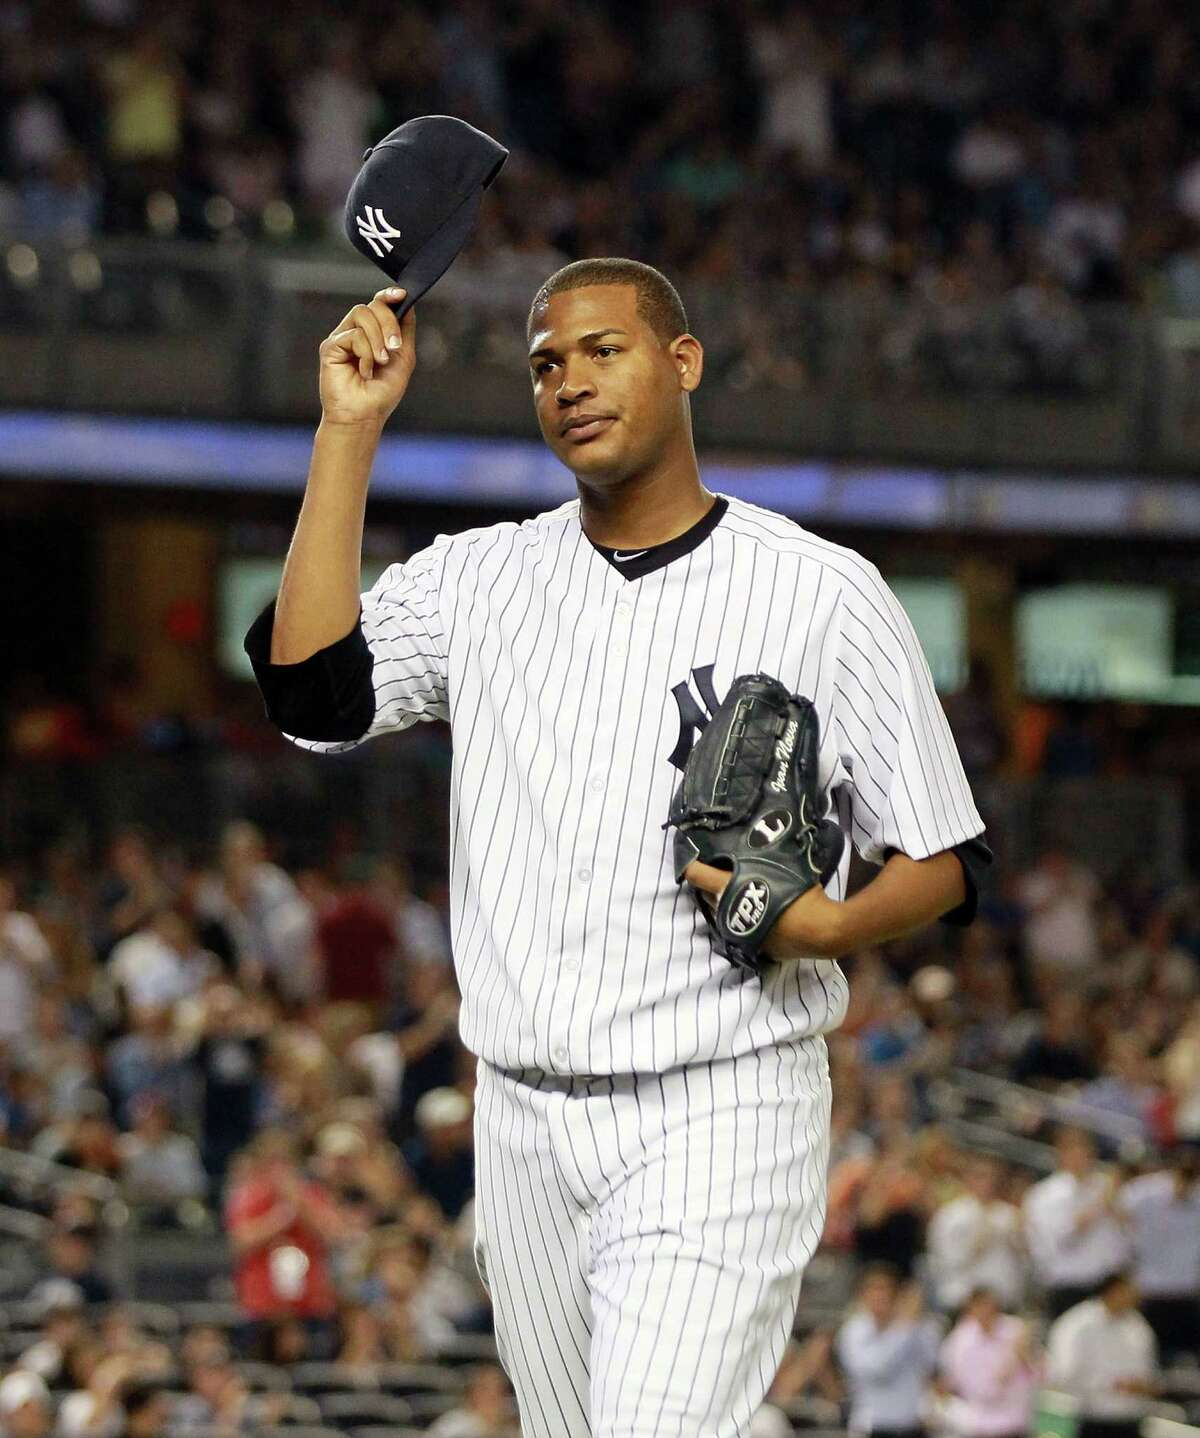 NEW YORK, NY - JUNE 28: Ivan Nova #47 of the New York Yankees tips his cap as he leaves the game against the Chicago White Sox in the eighth inning at Yankee Stadium on June 28, 2012 in the Bronx borough of New York City. (Photo by Jim McIsaac/Getty Images)